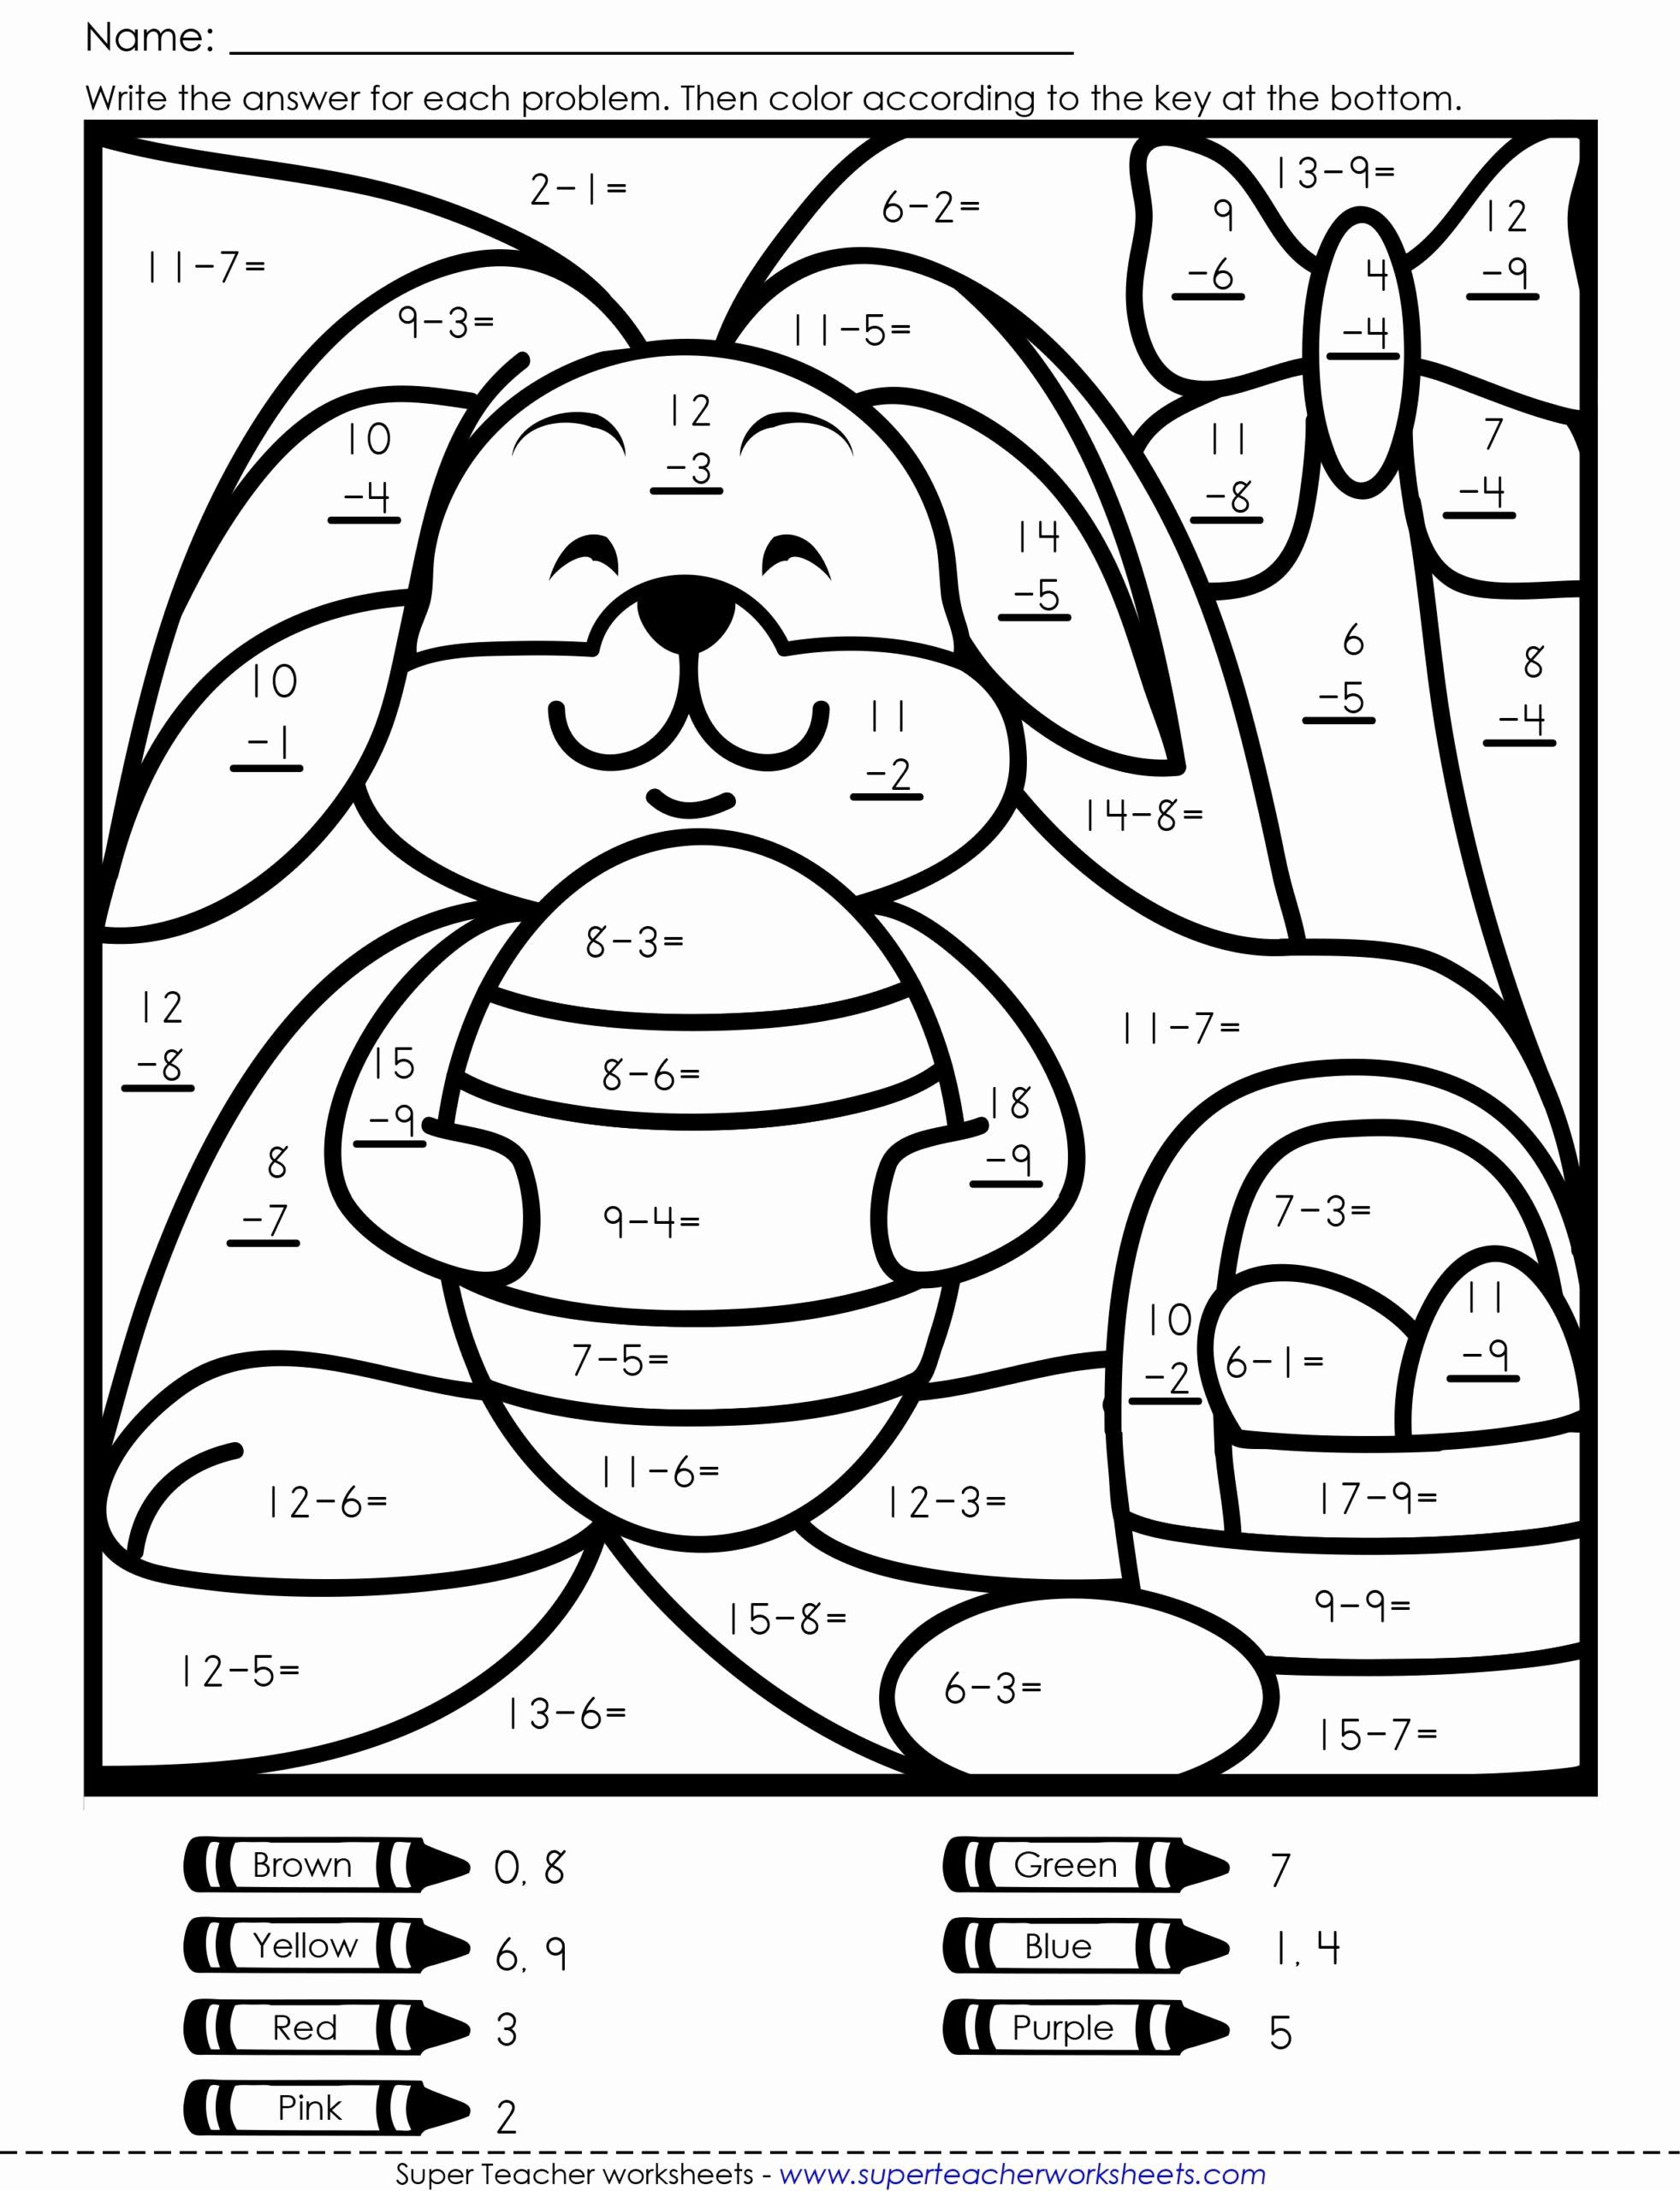 Coloring And Activity Pages Inspirational Coloring Pages Coloring Colouring In Maths Game Math In 2020 Easter Math Easter Worksheets Easter Math Worksheets